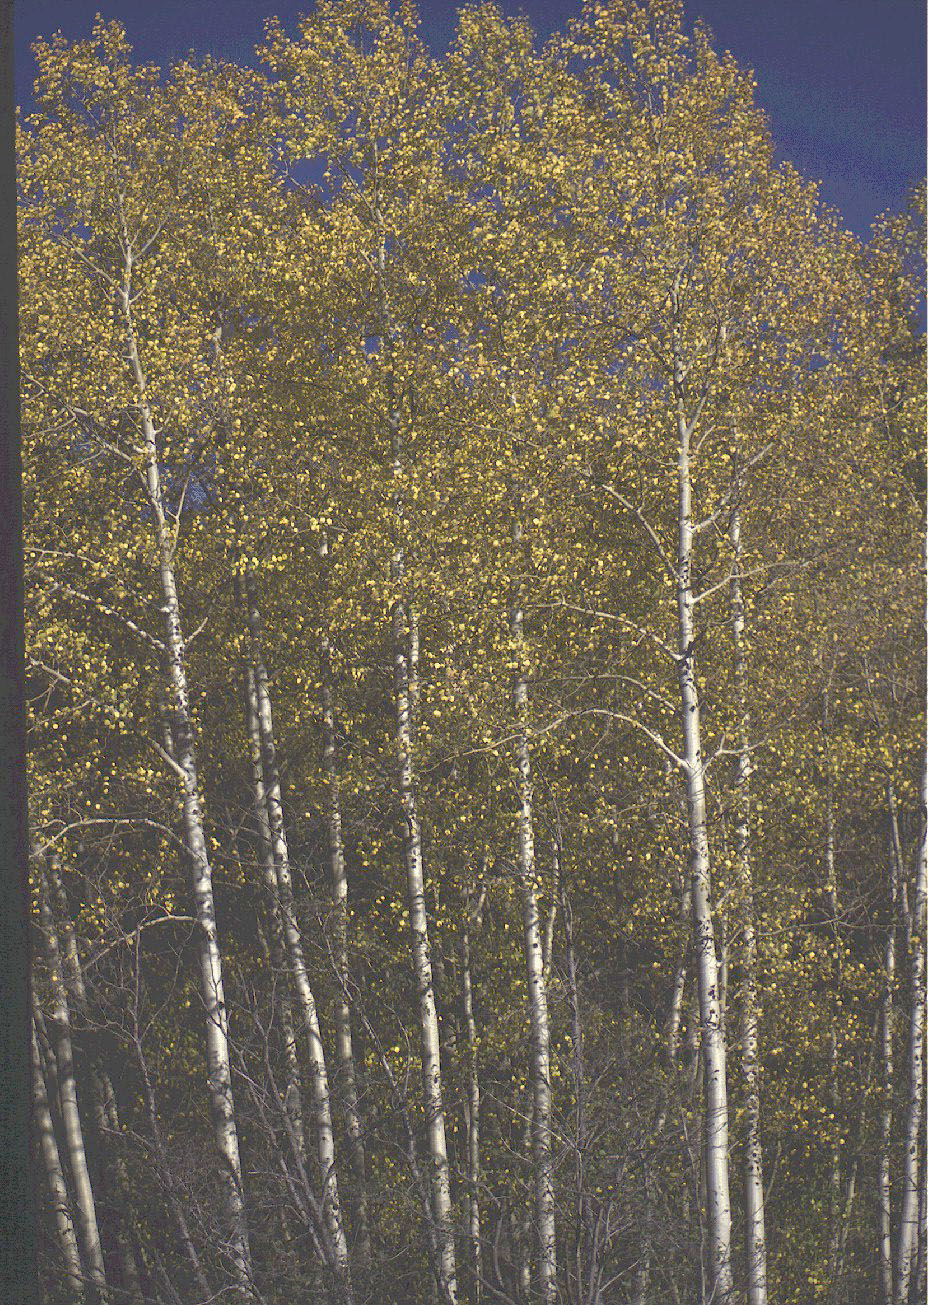 Cottonwoods, Fall		Taos